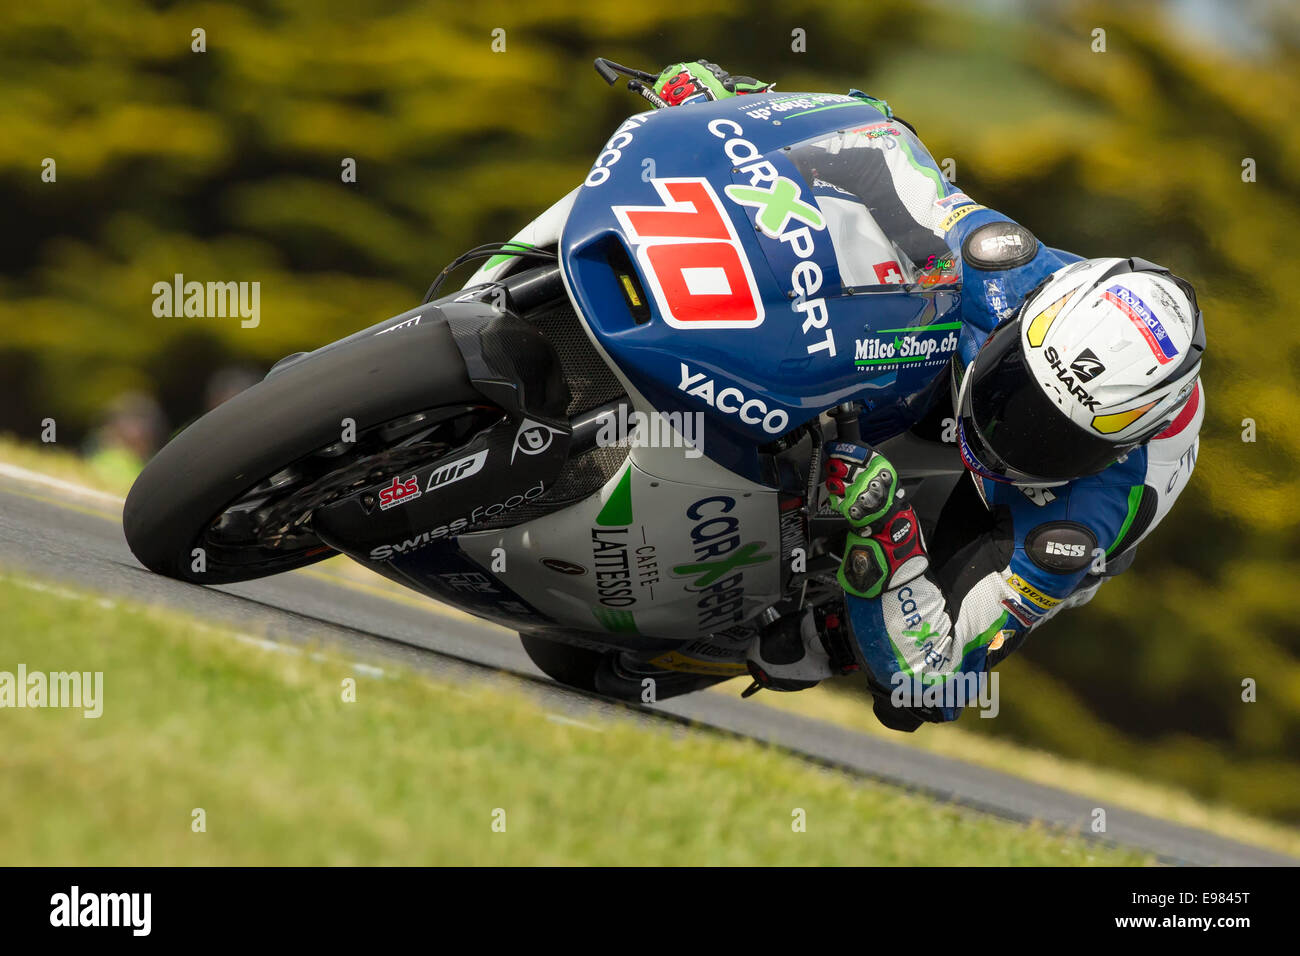 Swiss Moto2 rider Robin Mulhauser during Saturday qualifying practice of the 2014 Tissot Australian Motorcycle Grand - Stock Image